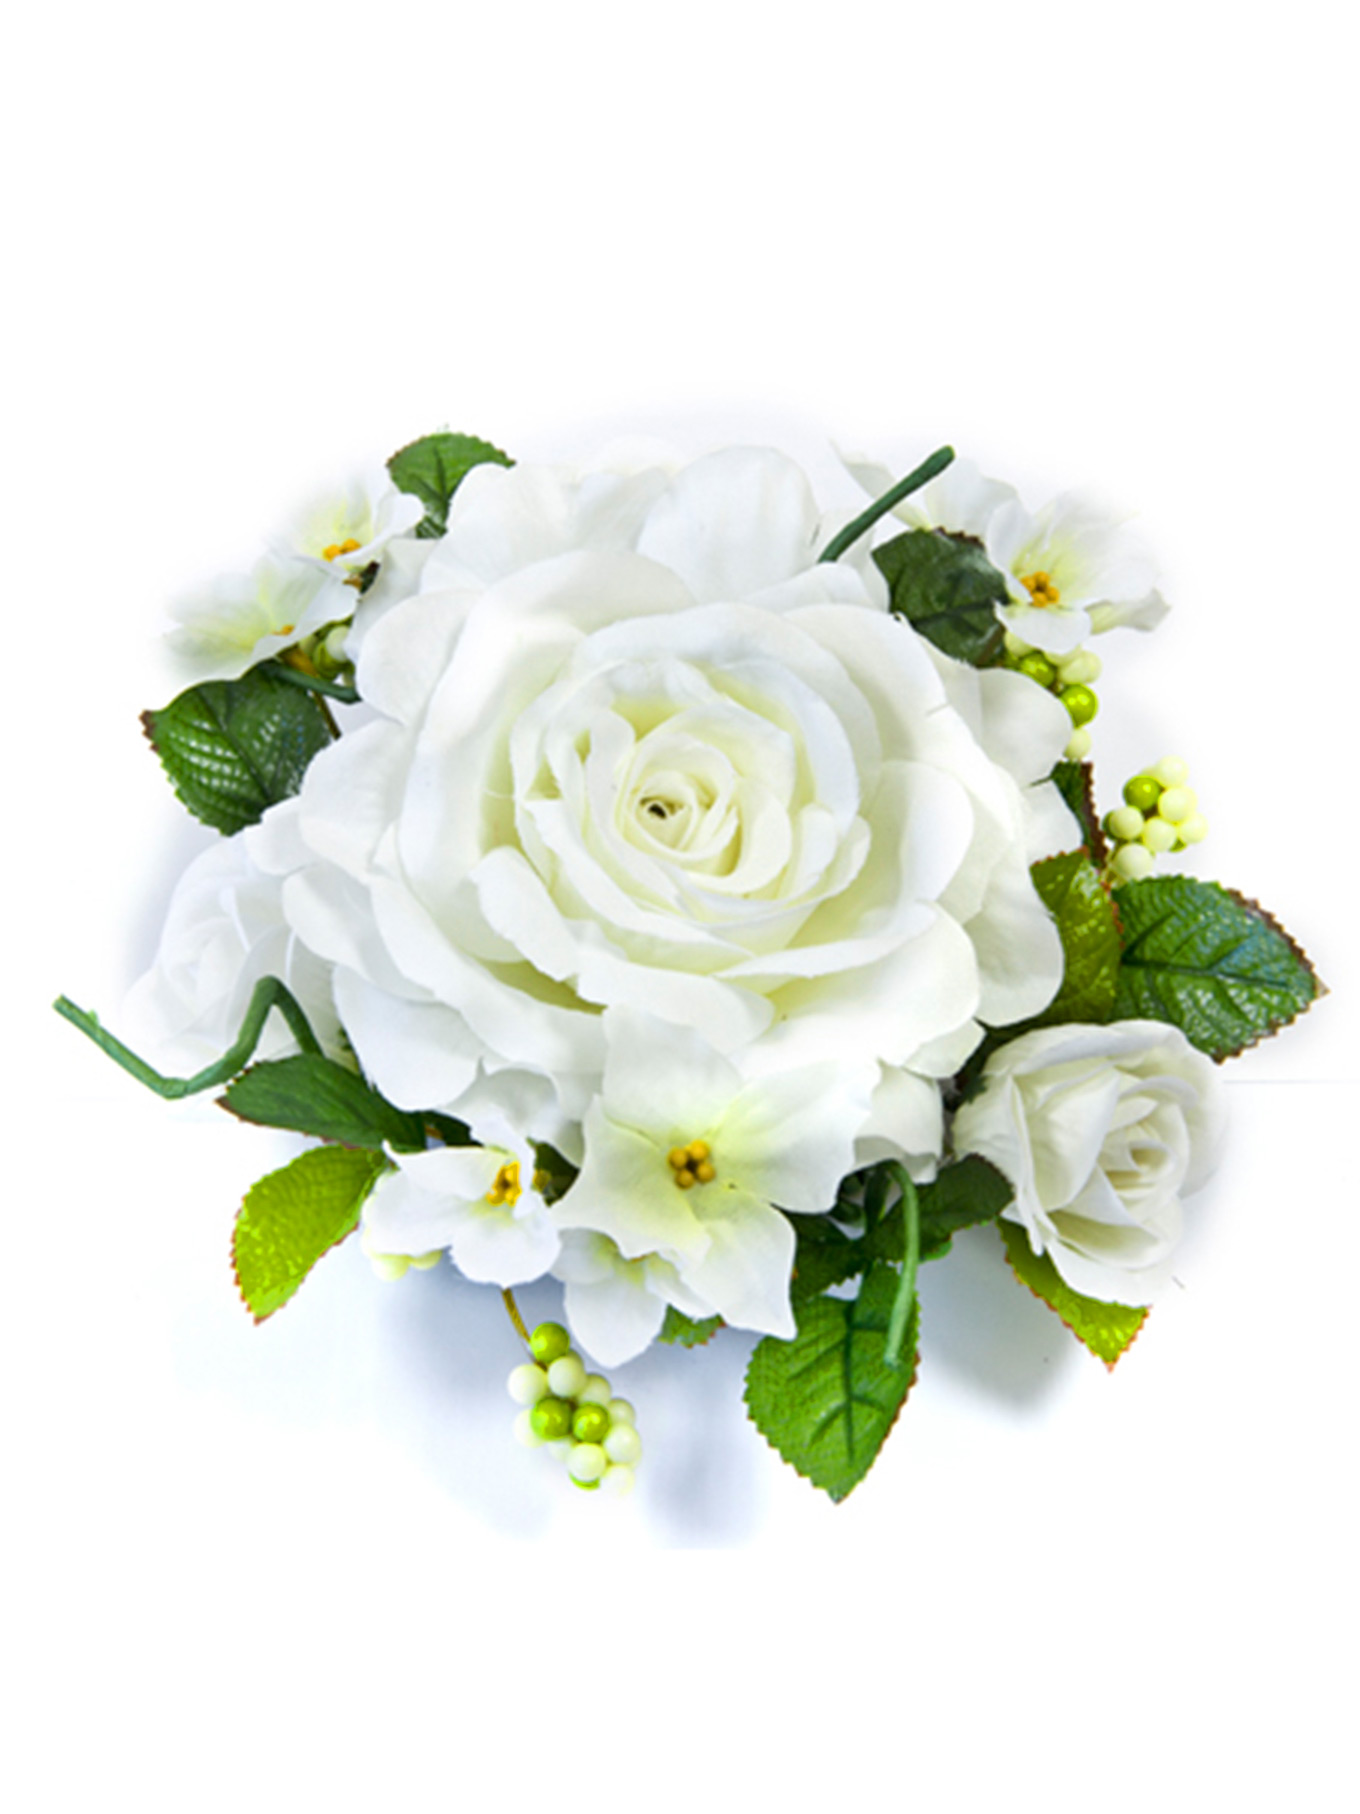 Centre de table fleurs artificielles roses blanches 20 cm for Bouquet de fleurs centre de table